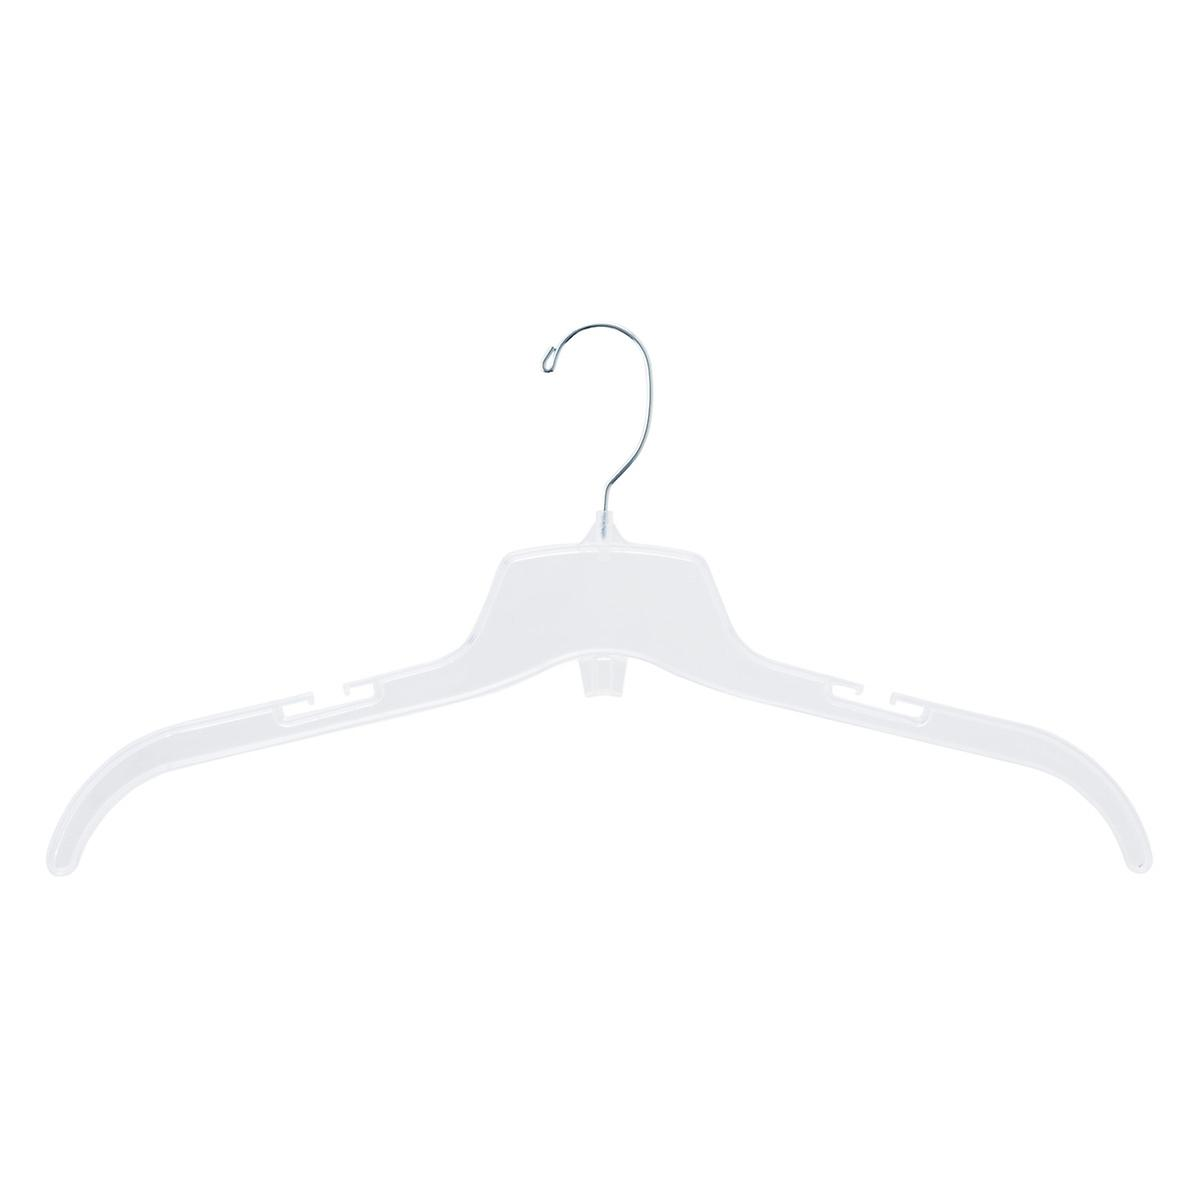 Oversized Break-Resistant Shirt & Dress Hanger